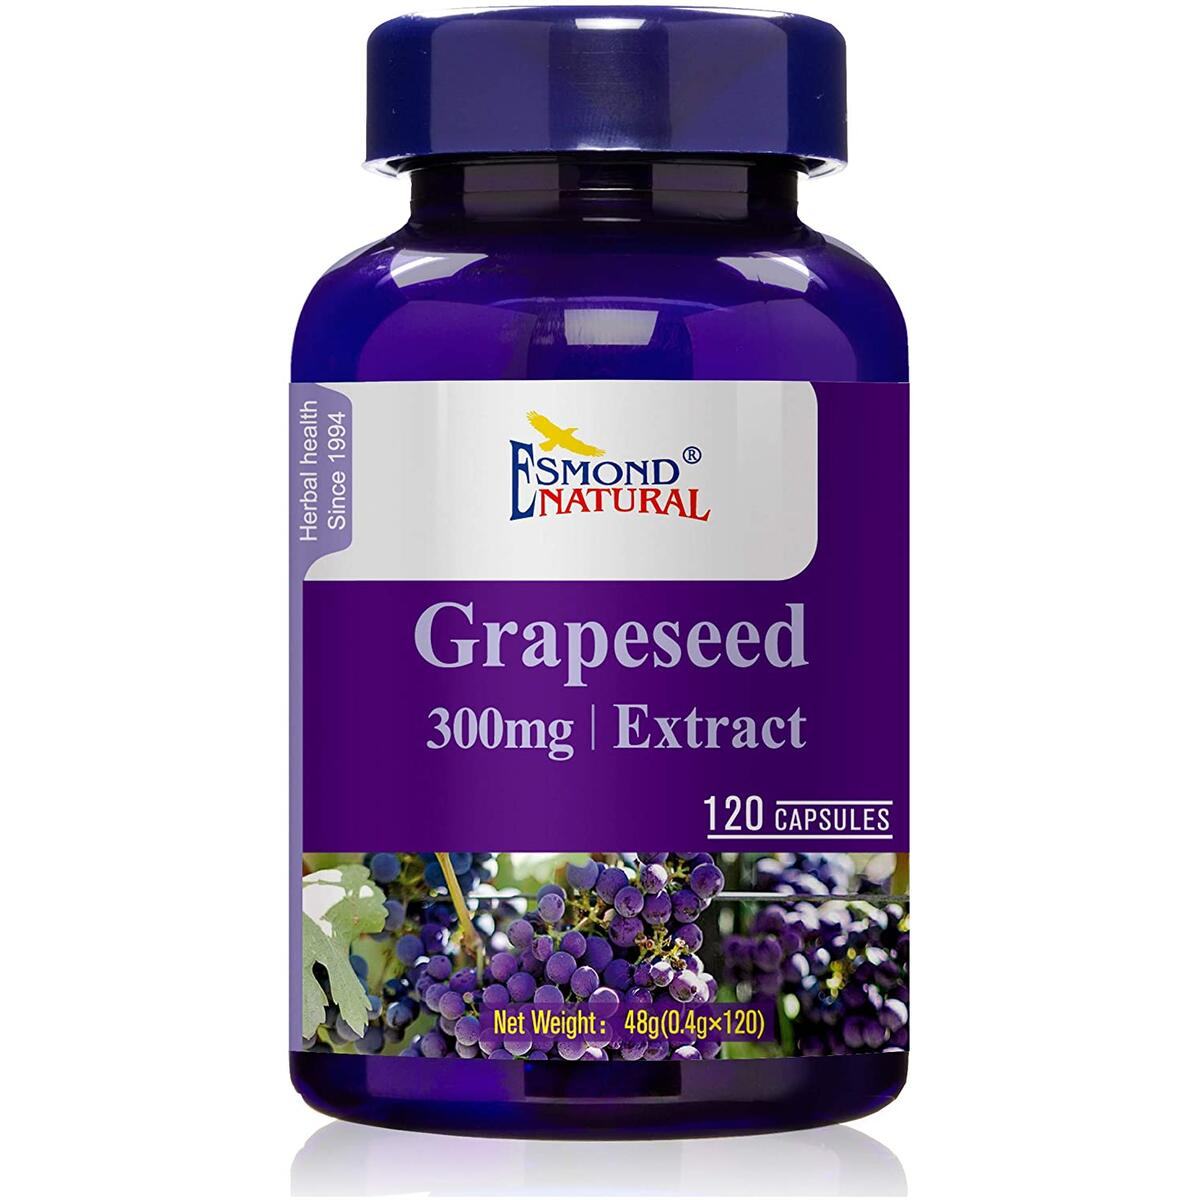 (3 Count, 10% Off) Esmond Natural: Grapeseed Extract (Helps Maintain Antioxidant Health), GMP, Natural Product Assn Certified, Made in USA-300mg, 360 Capsules